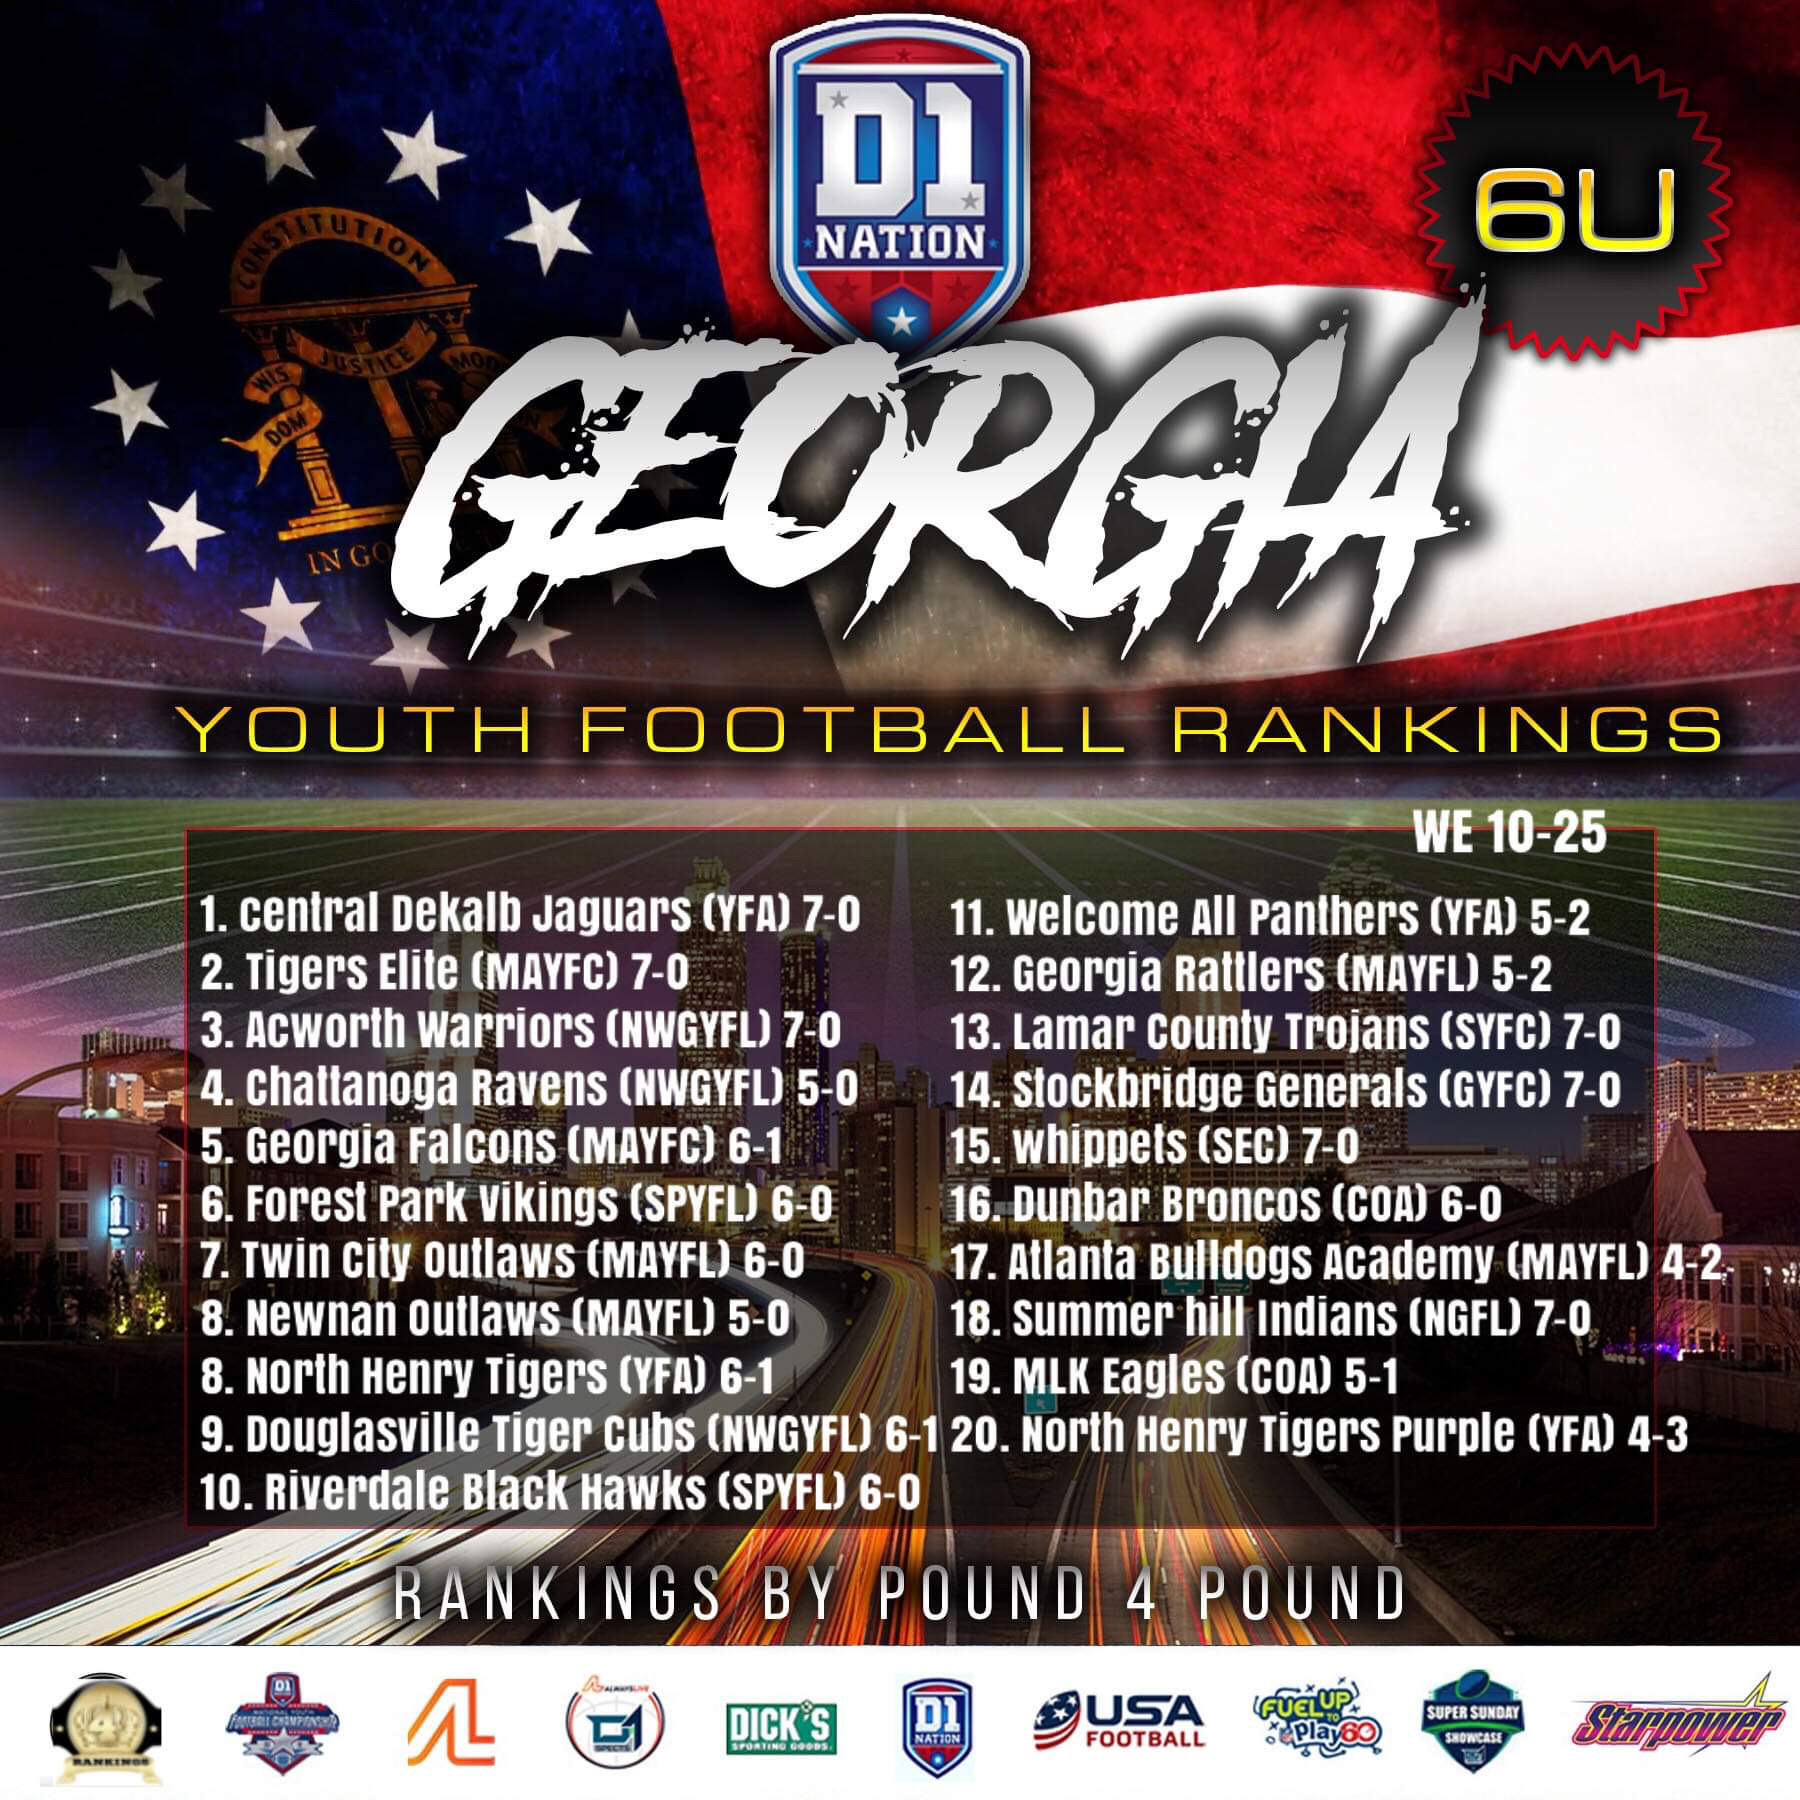 Update 11/1/2019: Georgia Youth Football Rankings – 6U